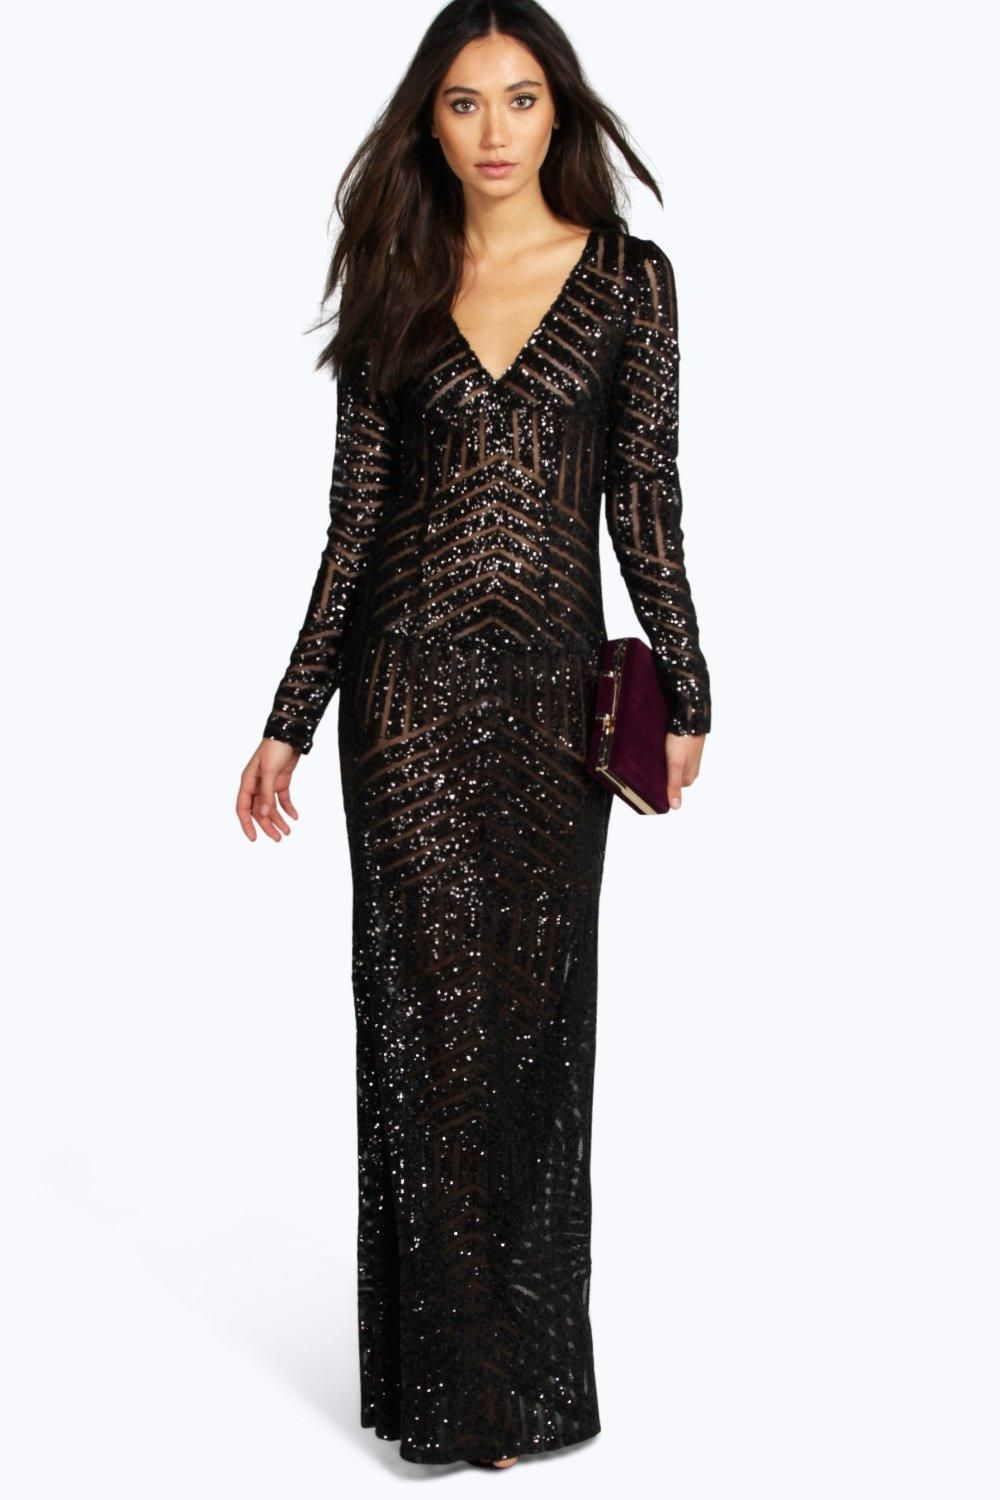 boohoo Boutique Mia Sequin Mesh Plunge Neck Maxi Dress - black  70.00 AT  vintagedancer.com f3a1794e6779